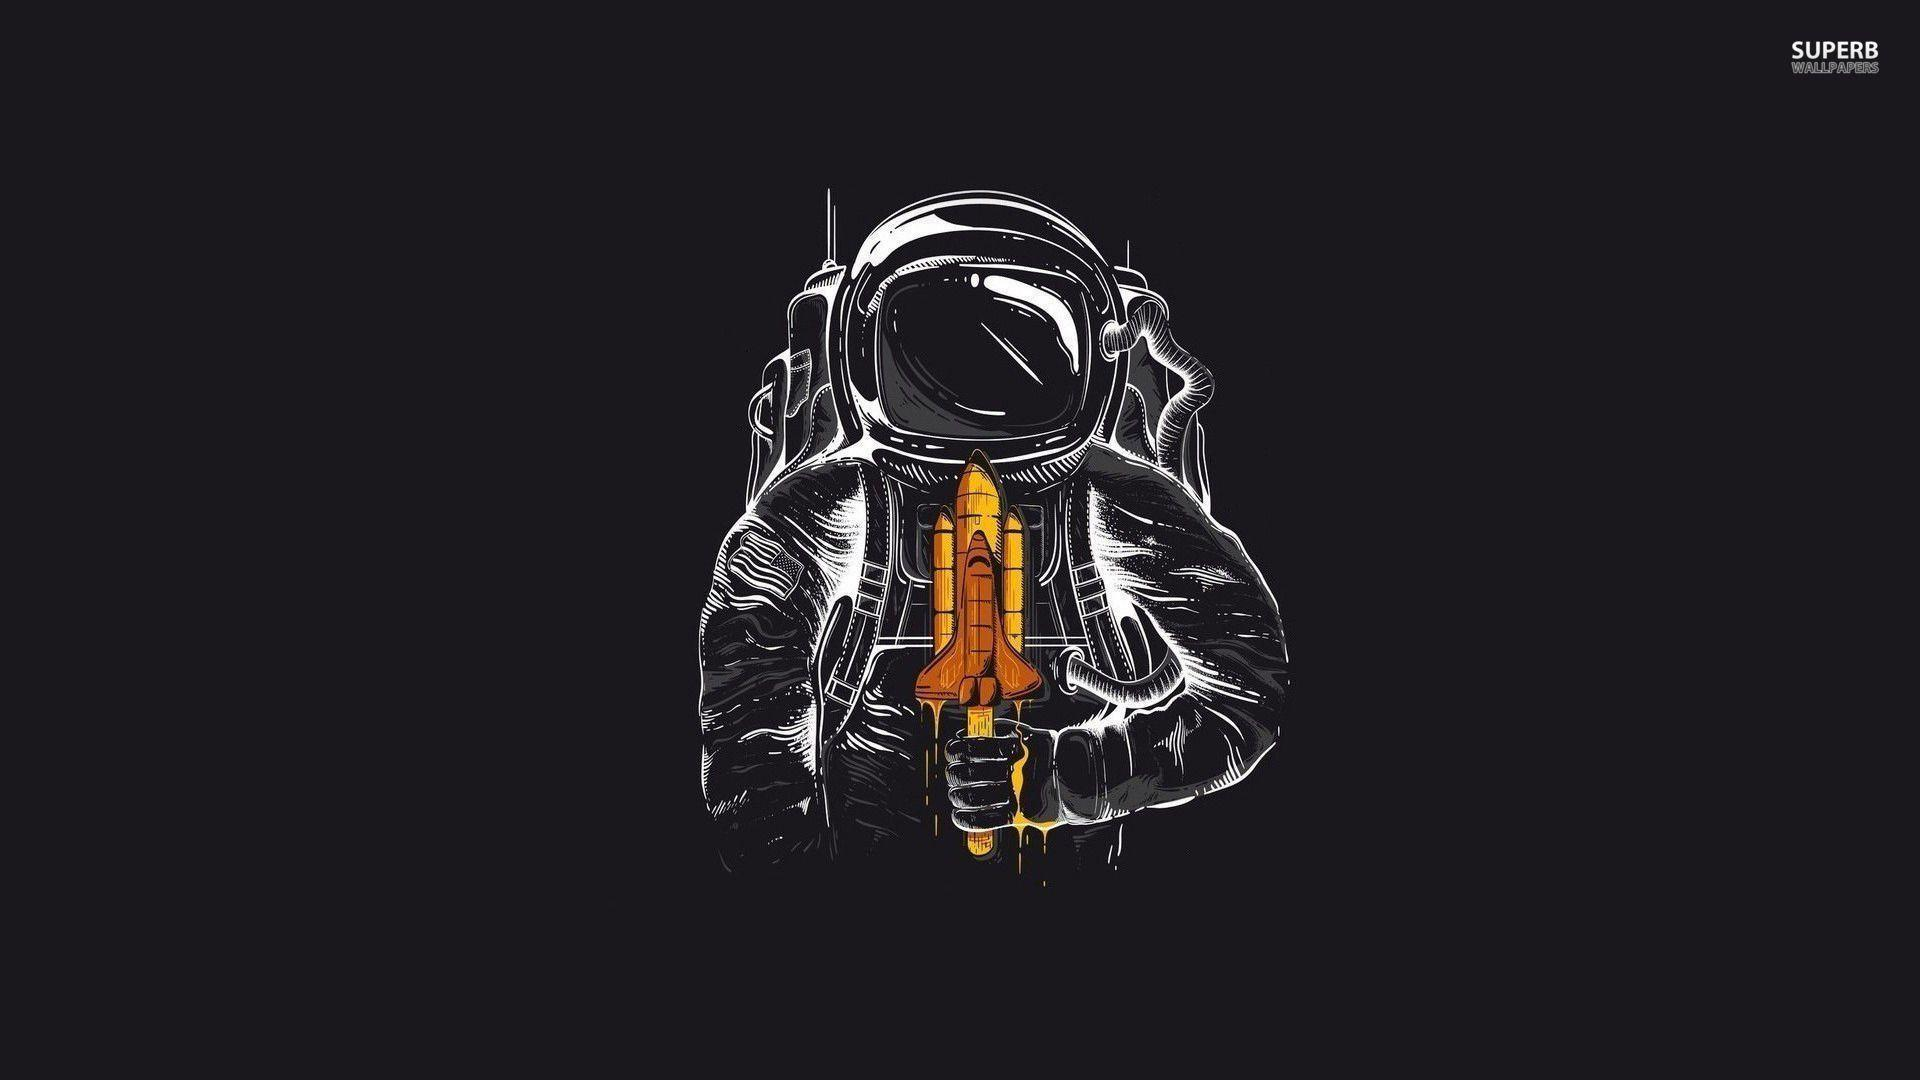 astronaut in space tumblr wallpaper - photo #29